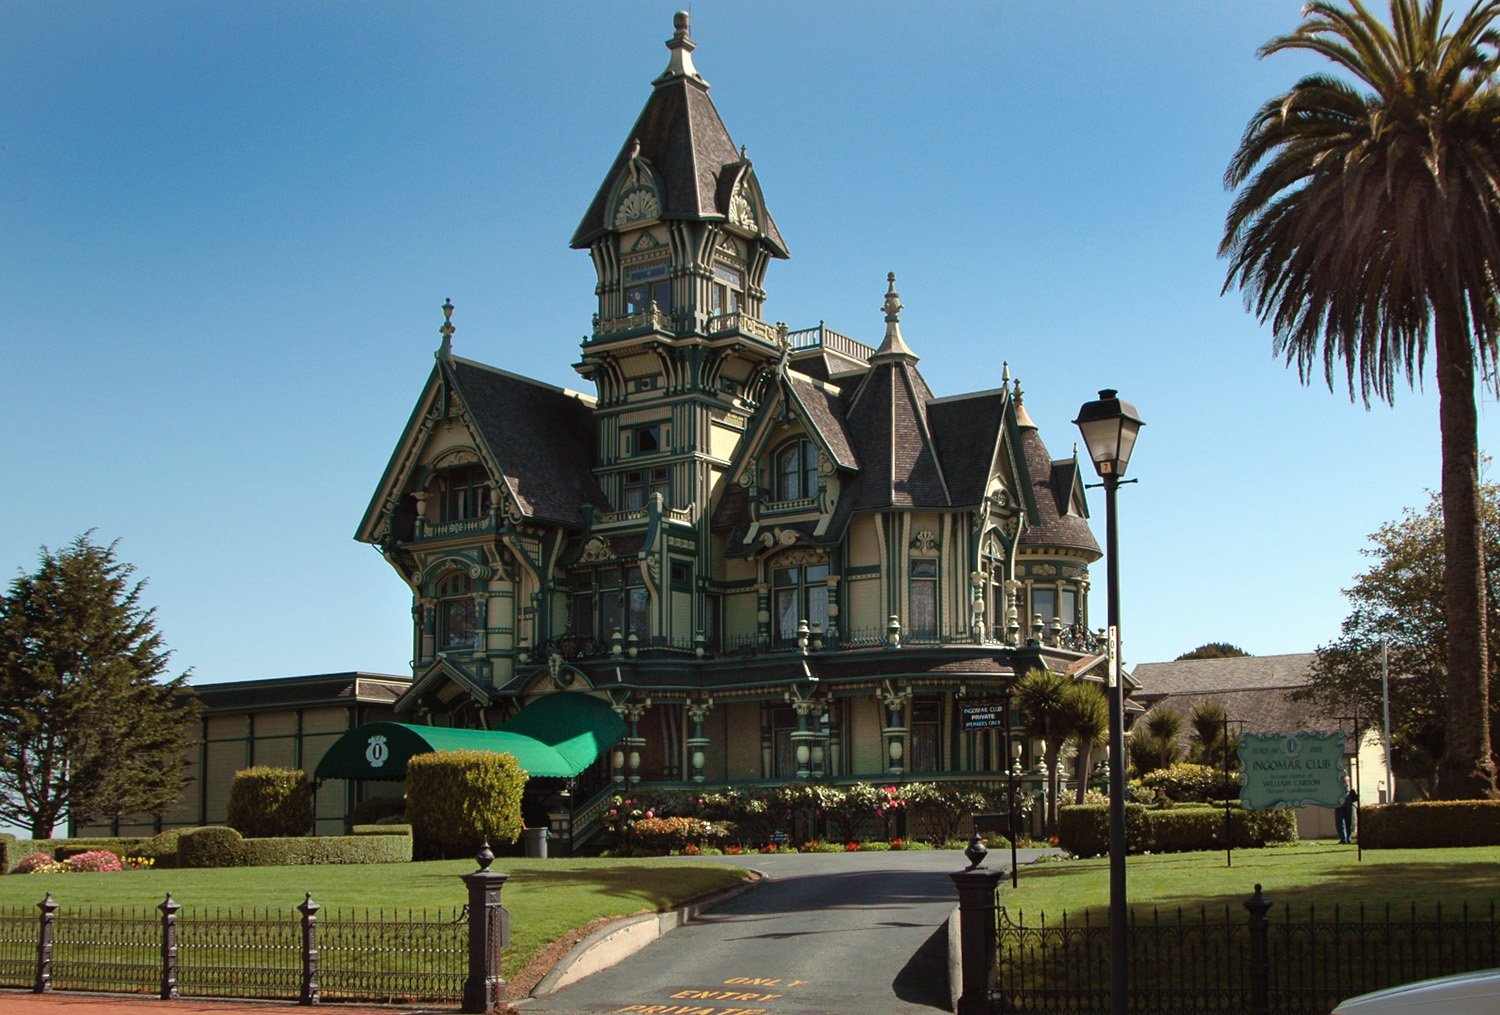 This is an image of the Carson Mansion.